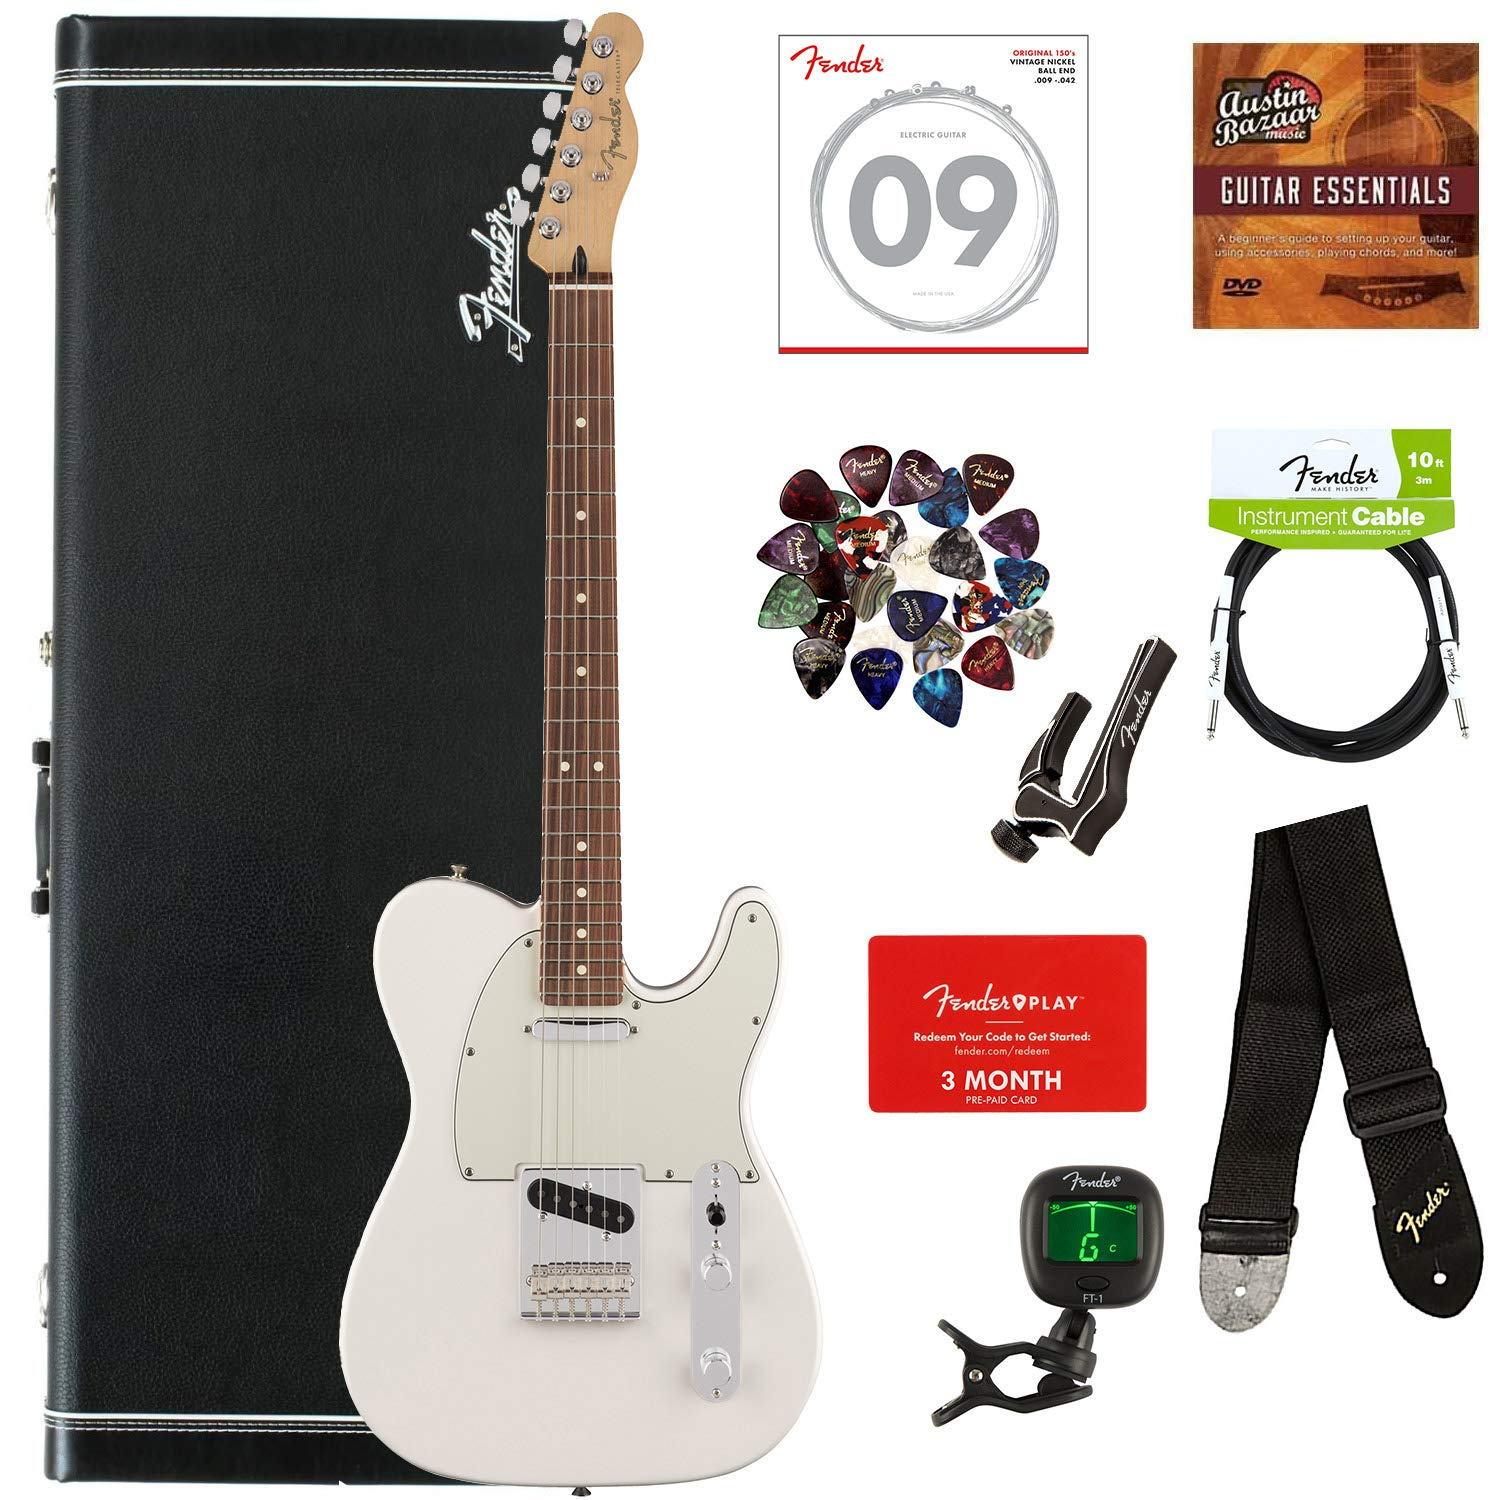 Fender Player Telecaster, Pau Ferro - Polar White Bundle with Hard Case, Cable, Tuner, Strap, Strings, Picks, Capo, Fender Play Online Lessons, and Austin Bazaar Instructional DVD